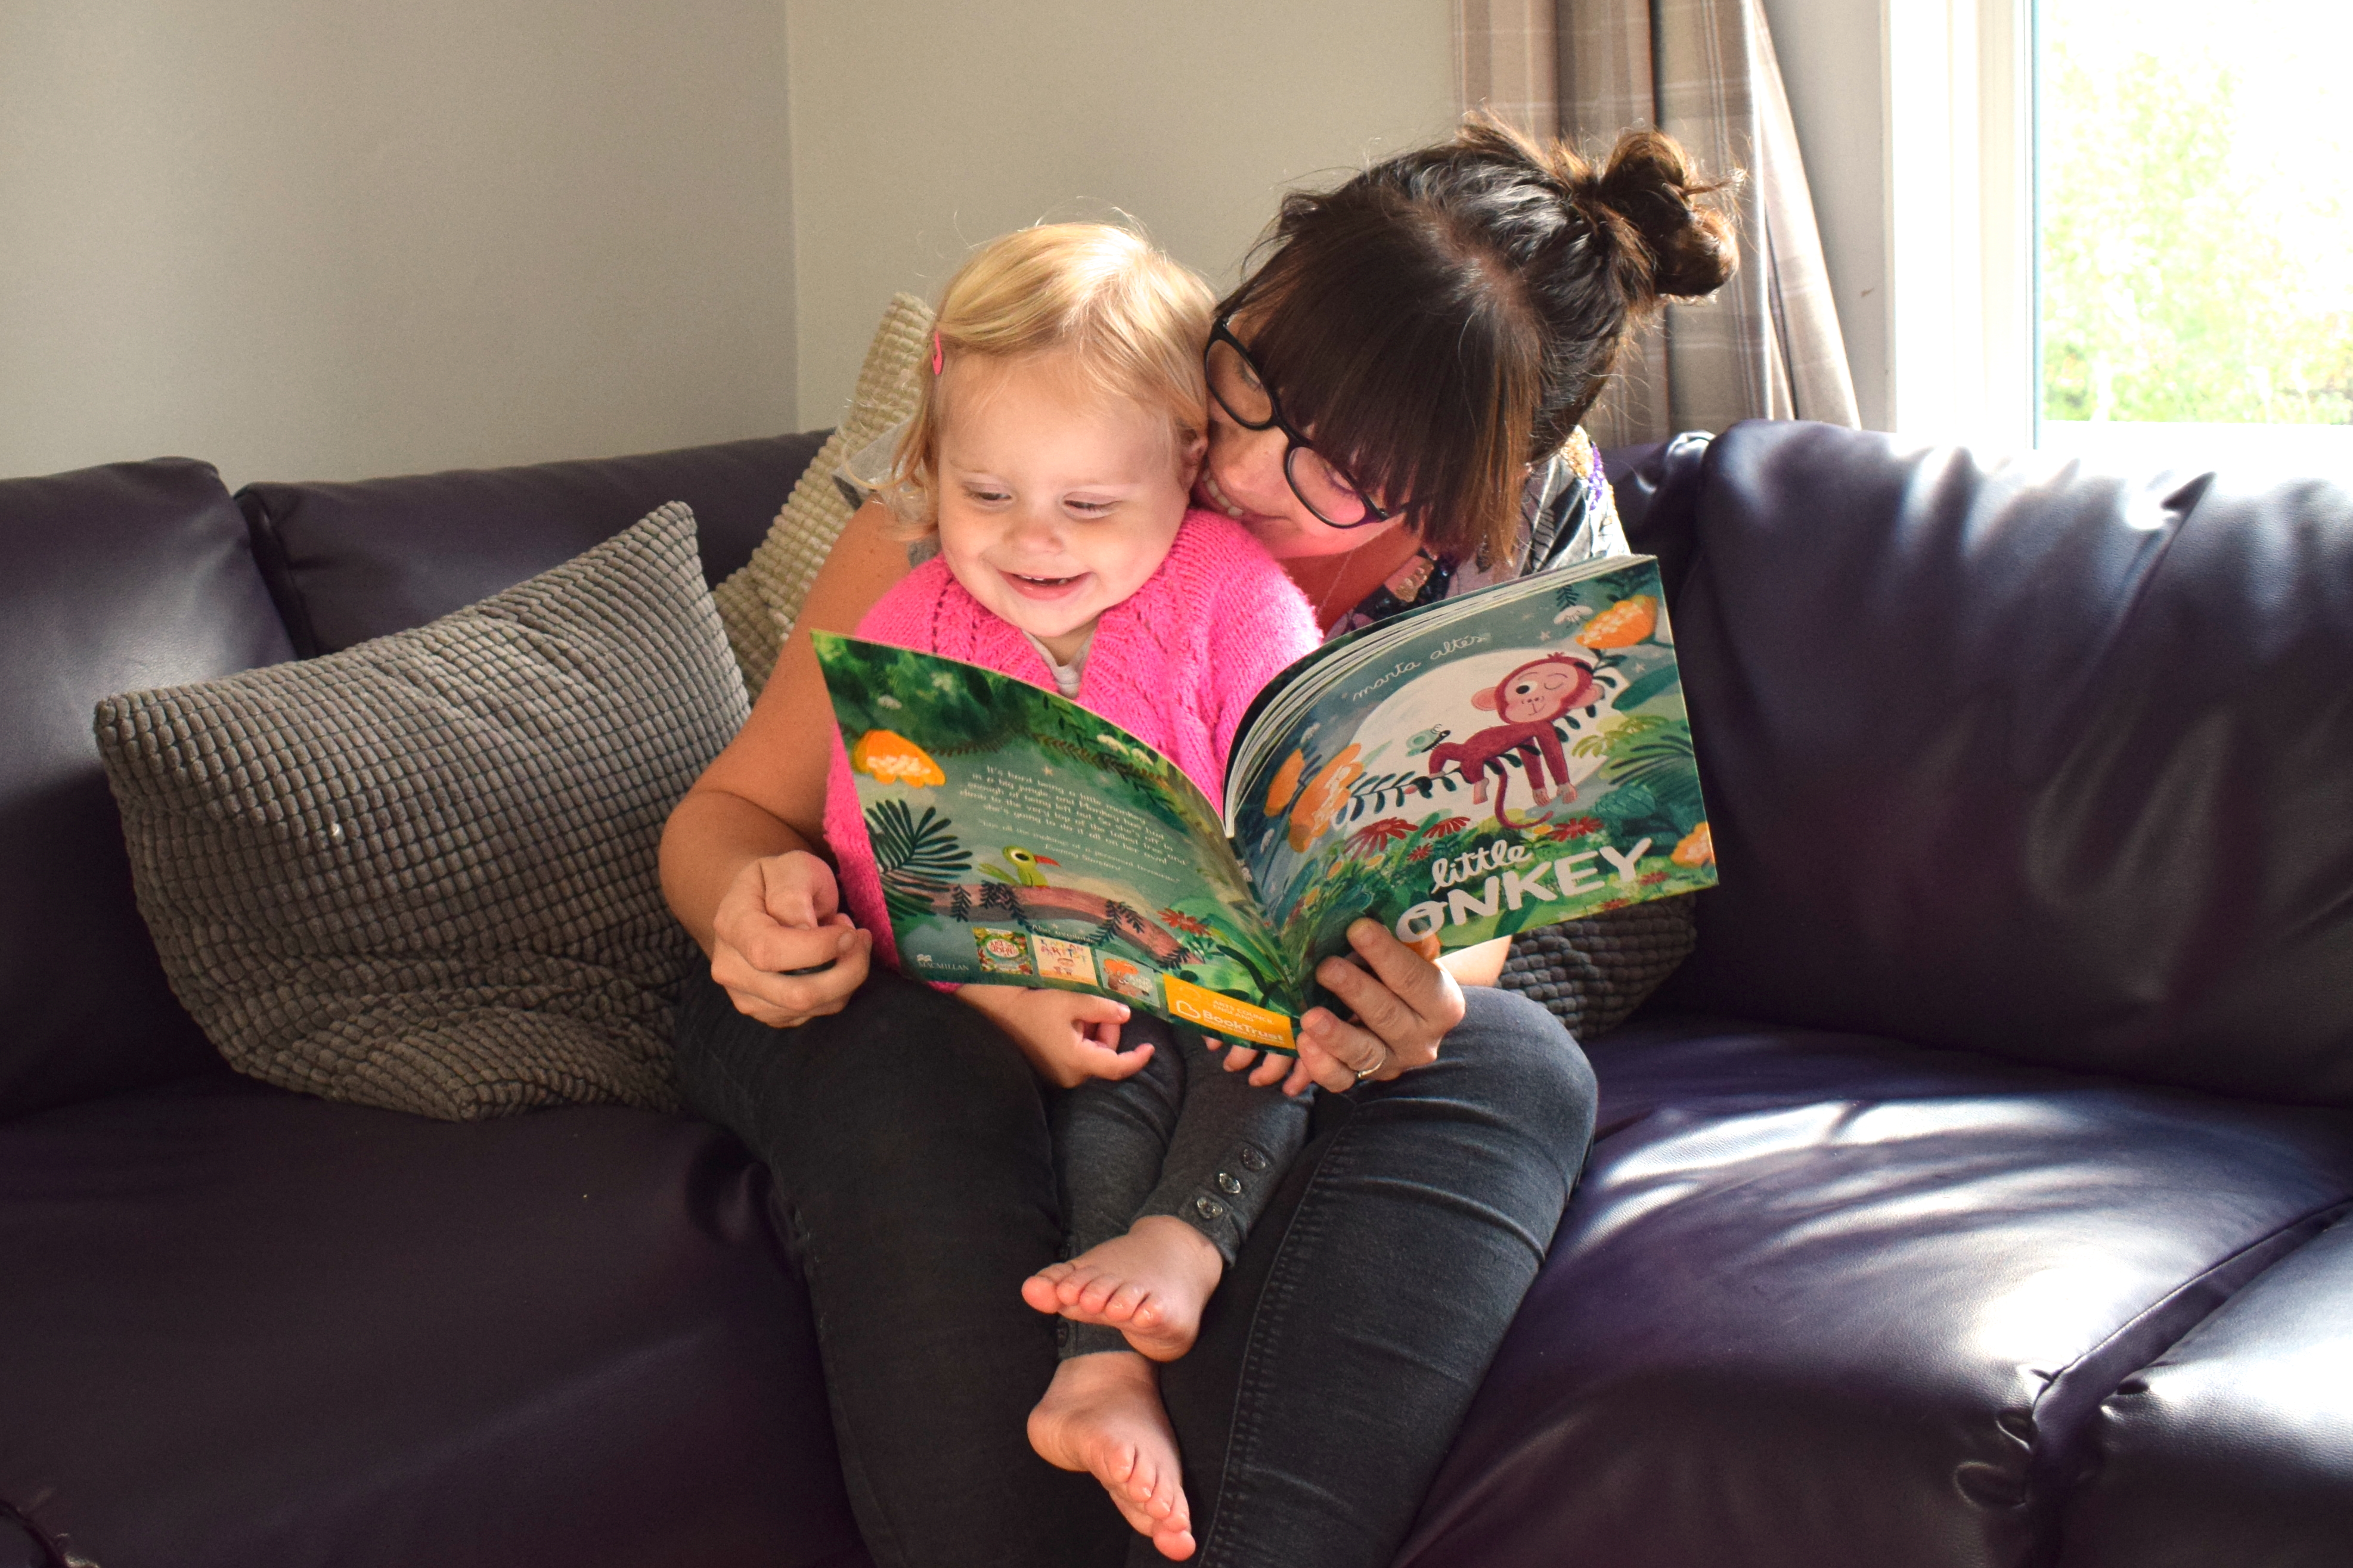 mother laughing with one year old on her lap, during time to read